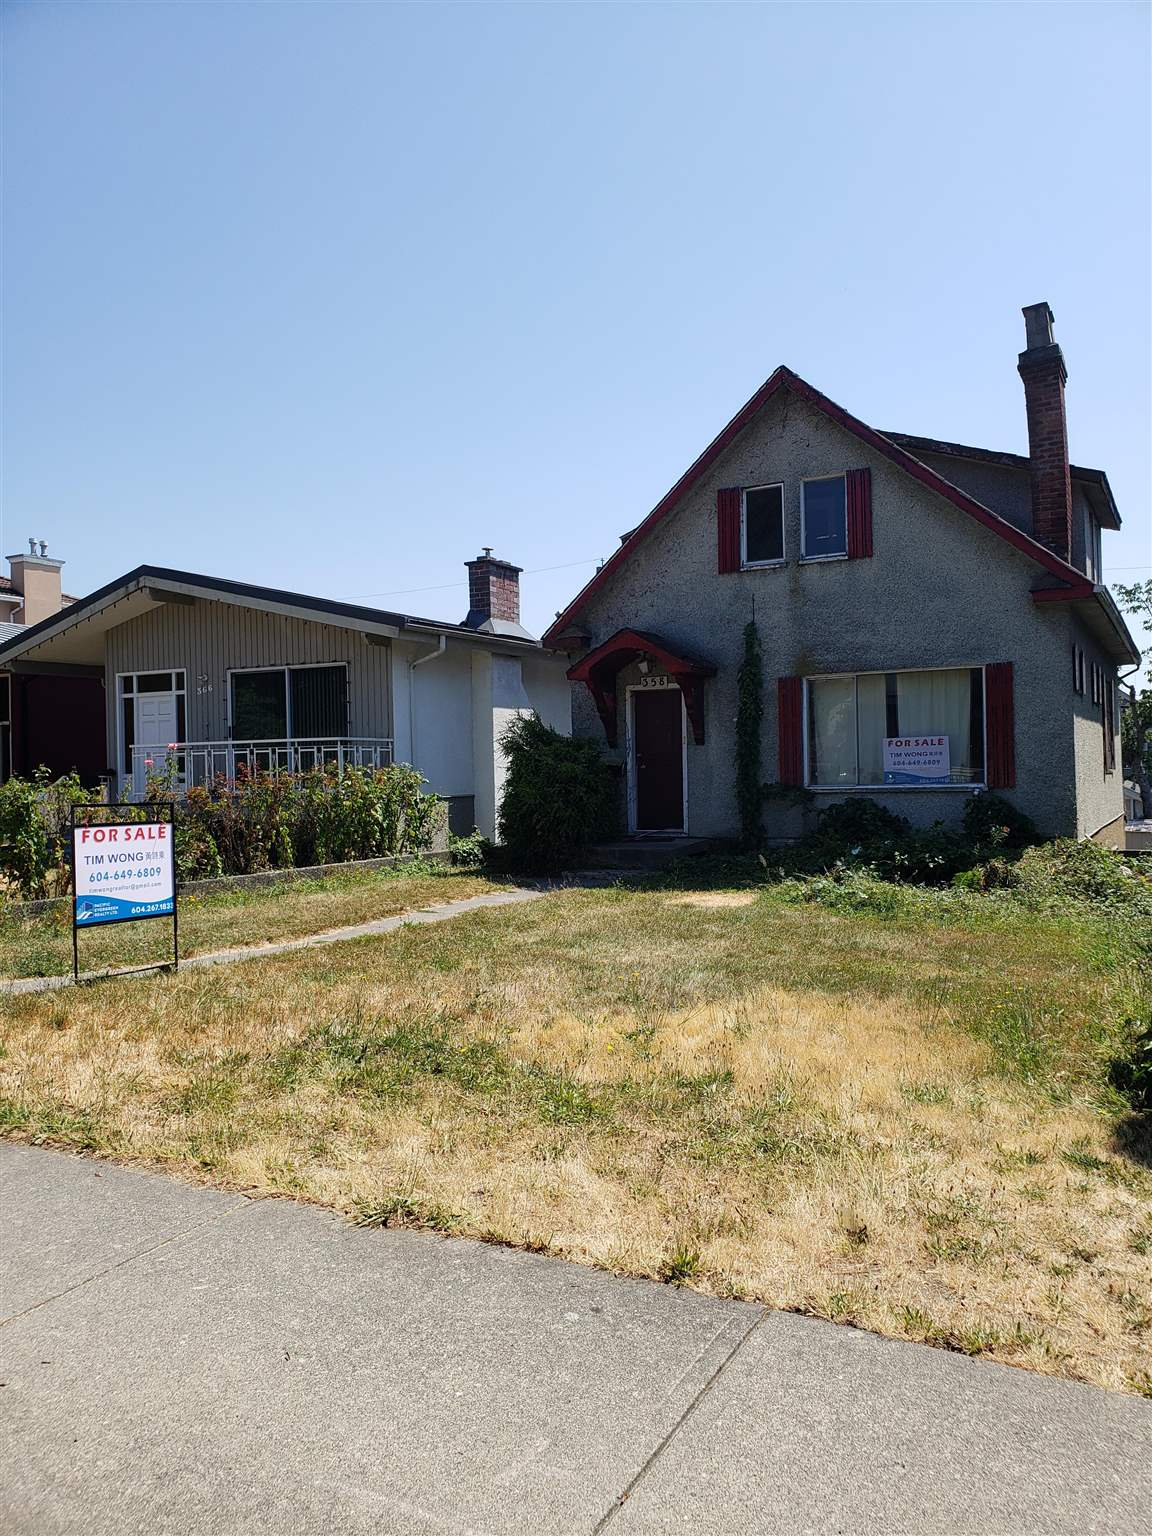 358 E 49TH AVENUE - South Vancouver House/Single Family for sale, 7 Bedrooms (R2600818) - #1